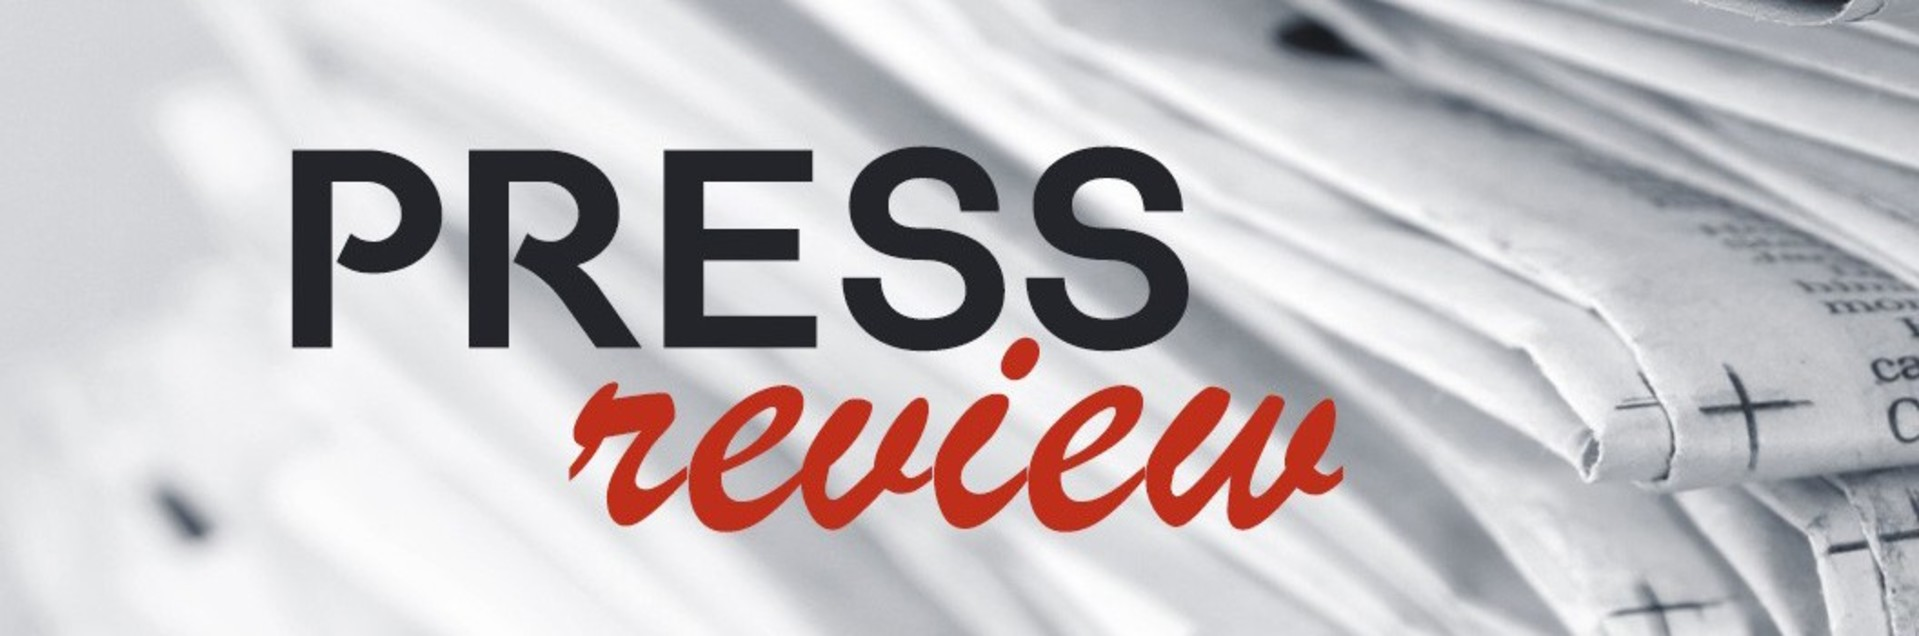 q&t-press-review